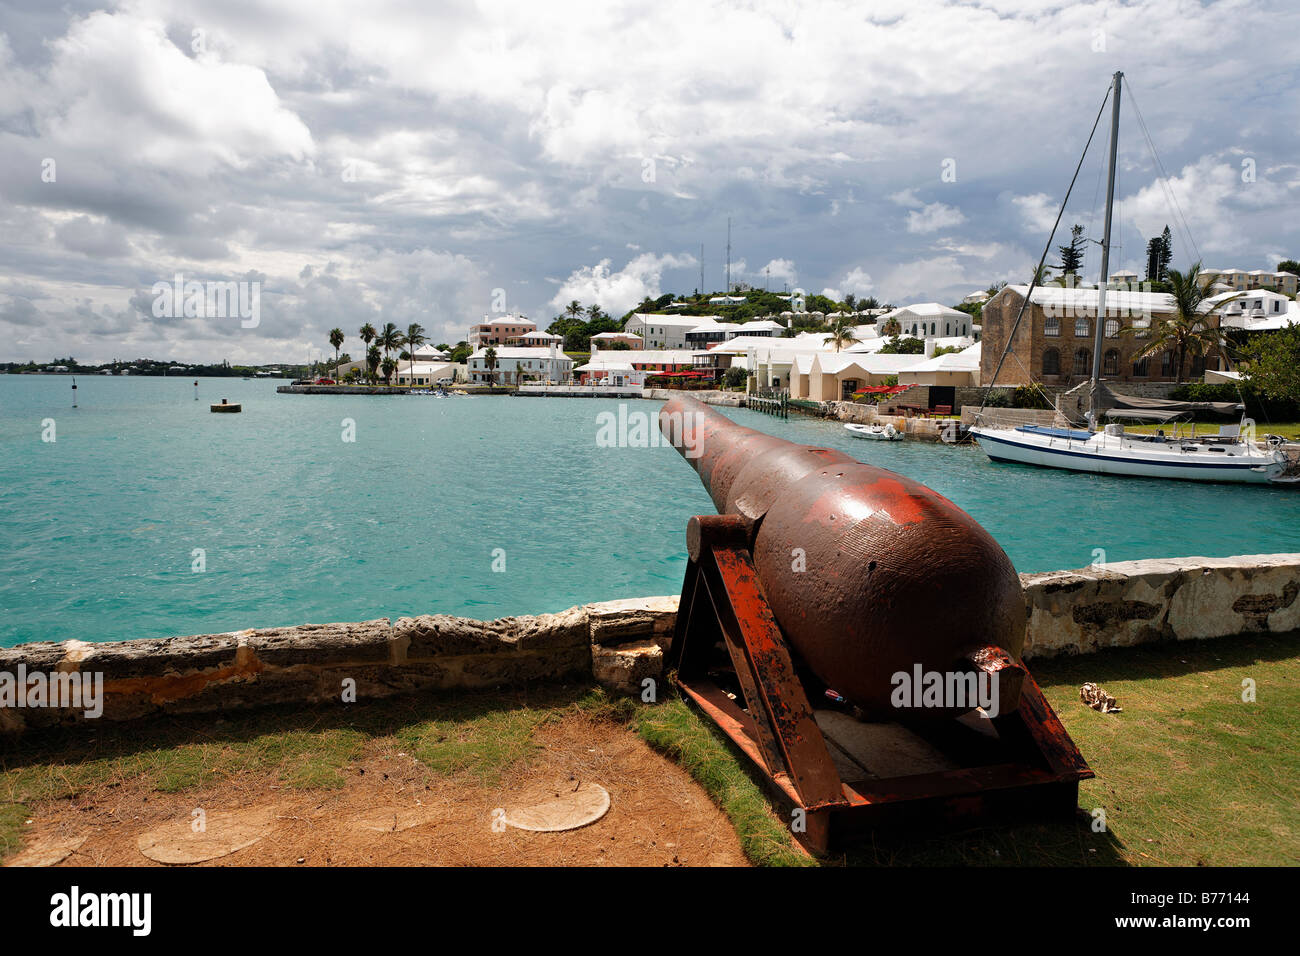 View of a Harbor with an Old Cannon in the Foreground St George Bermuda - Stock Image